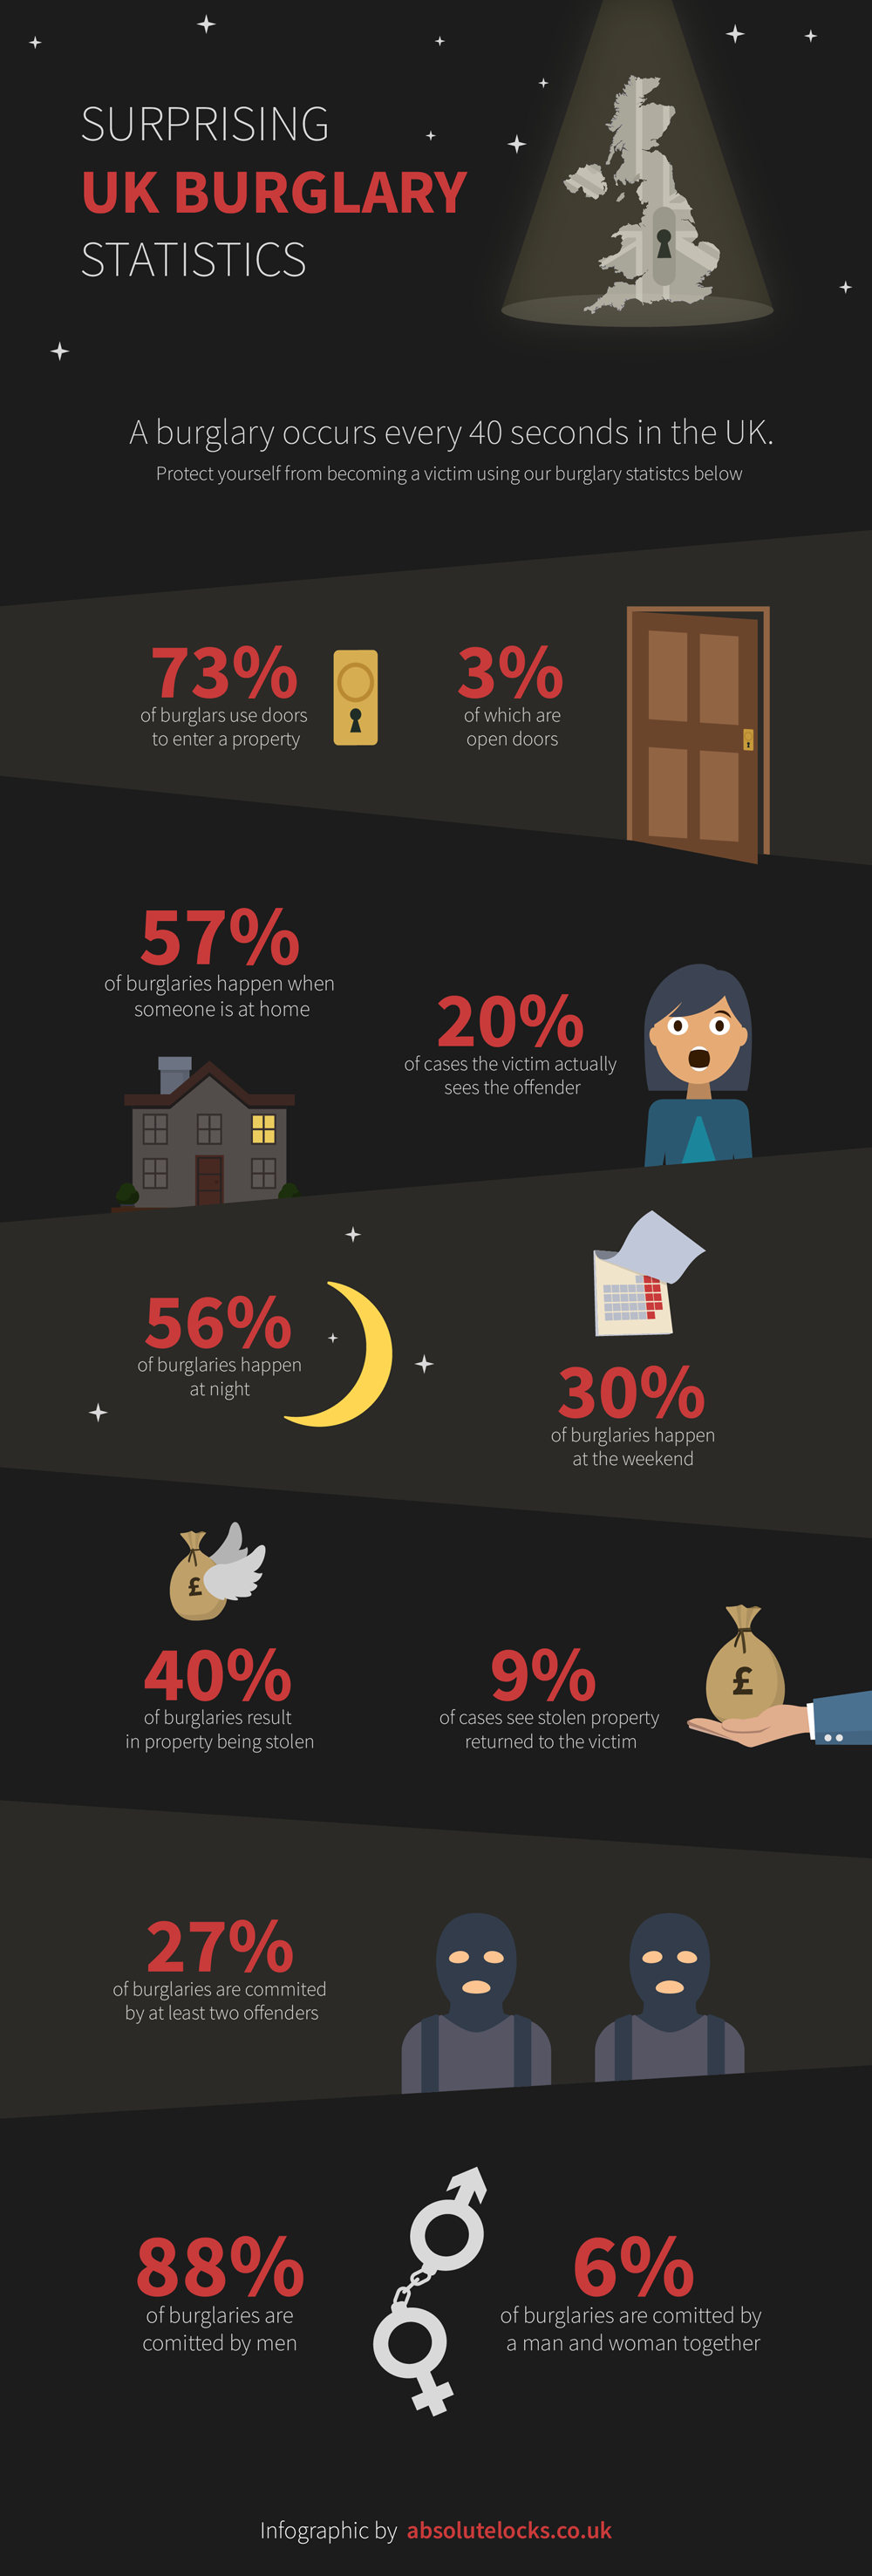 Surprising UK Burglary Statistics